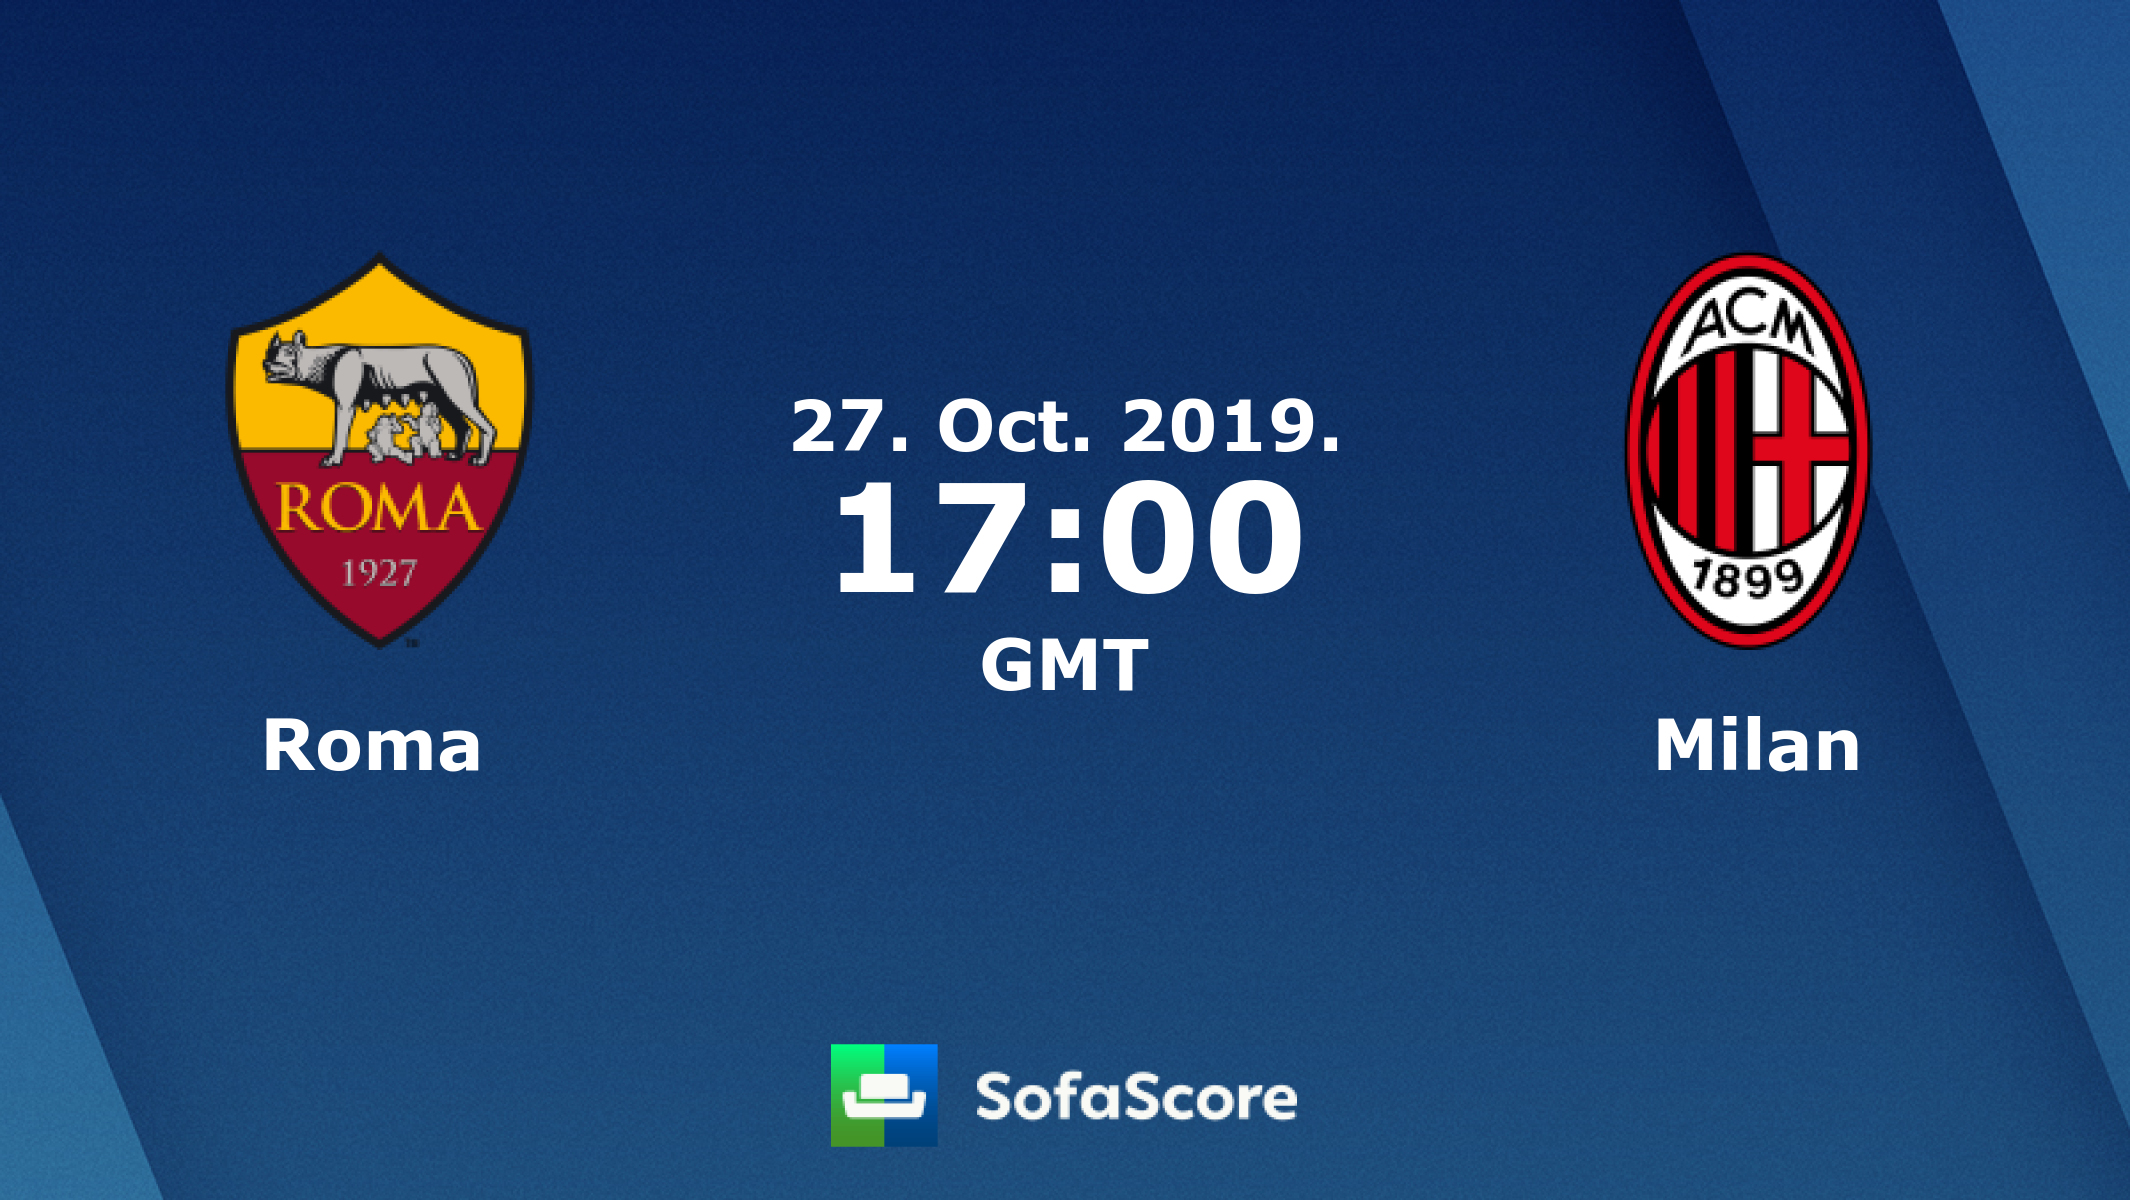 Roma Milan live score, video stream and H2H results - SofaScore